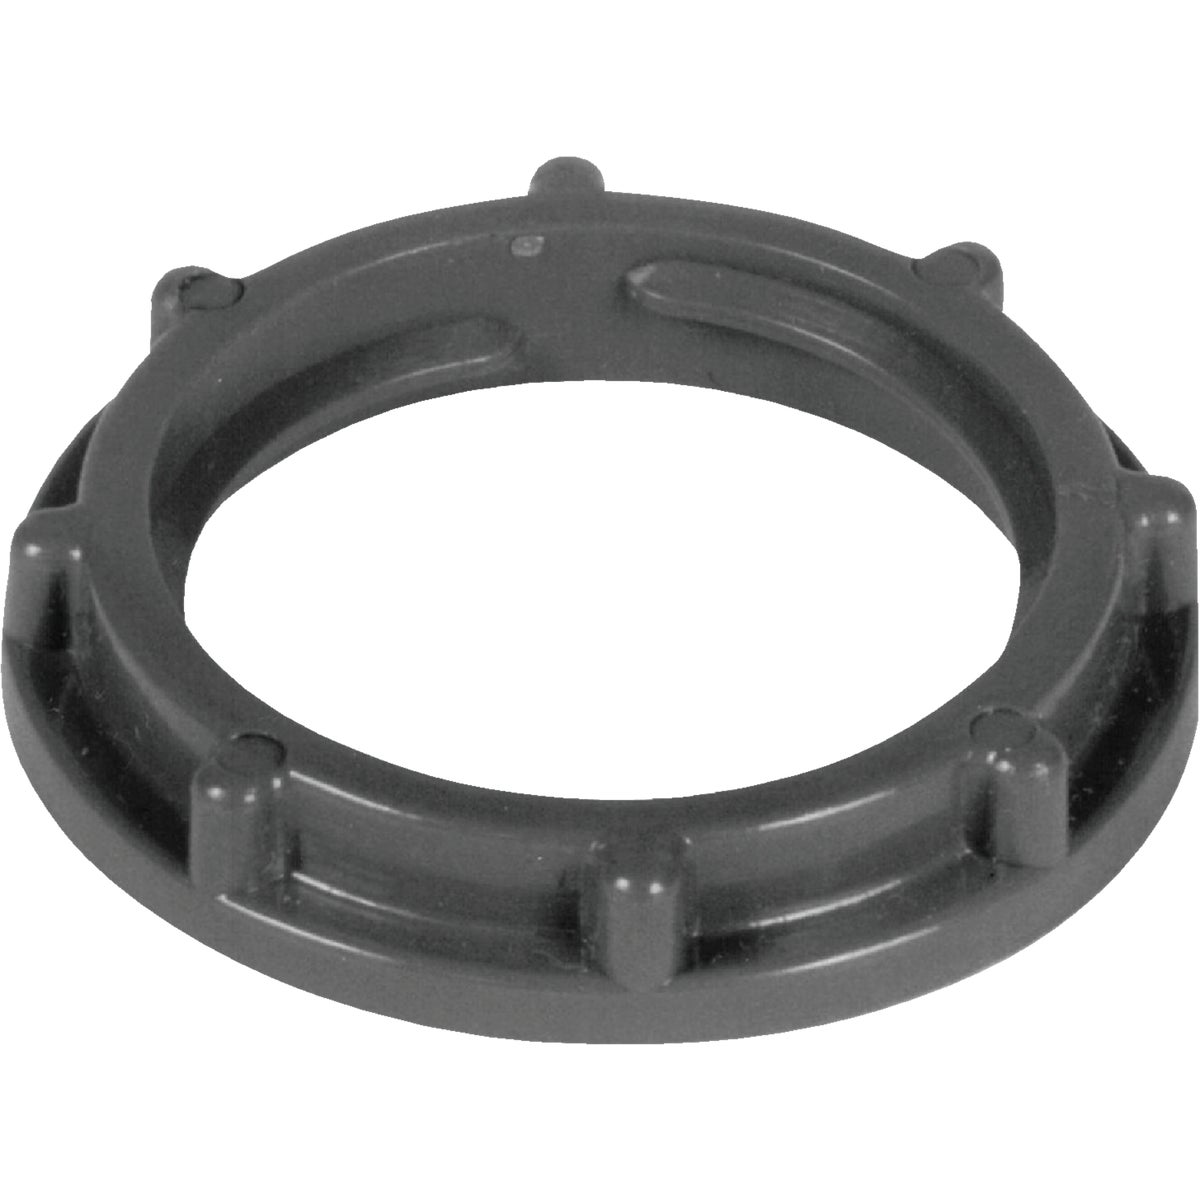 "1/2"" PVC LOCKNUT - LT9LDR by Thomas & Betts"